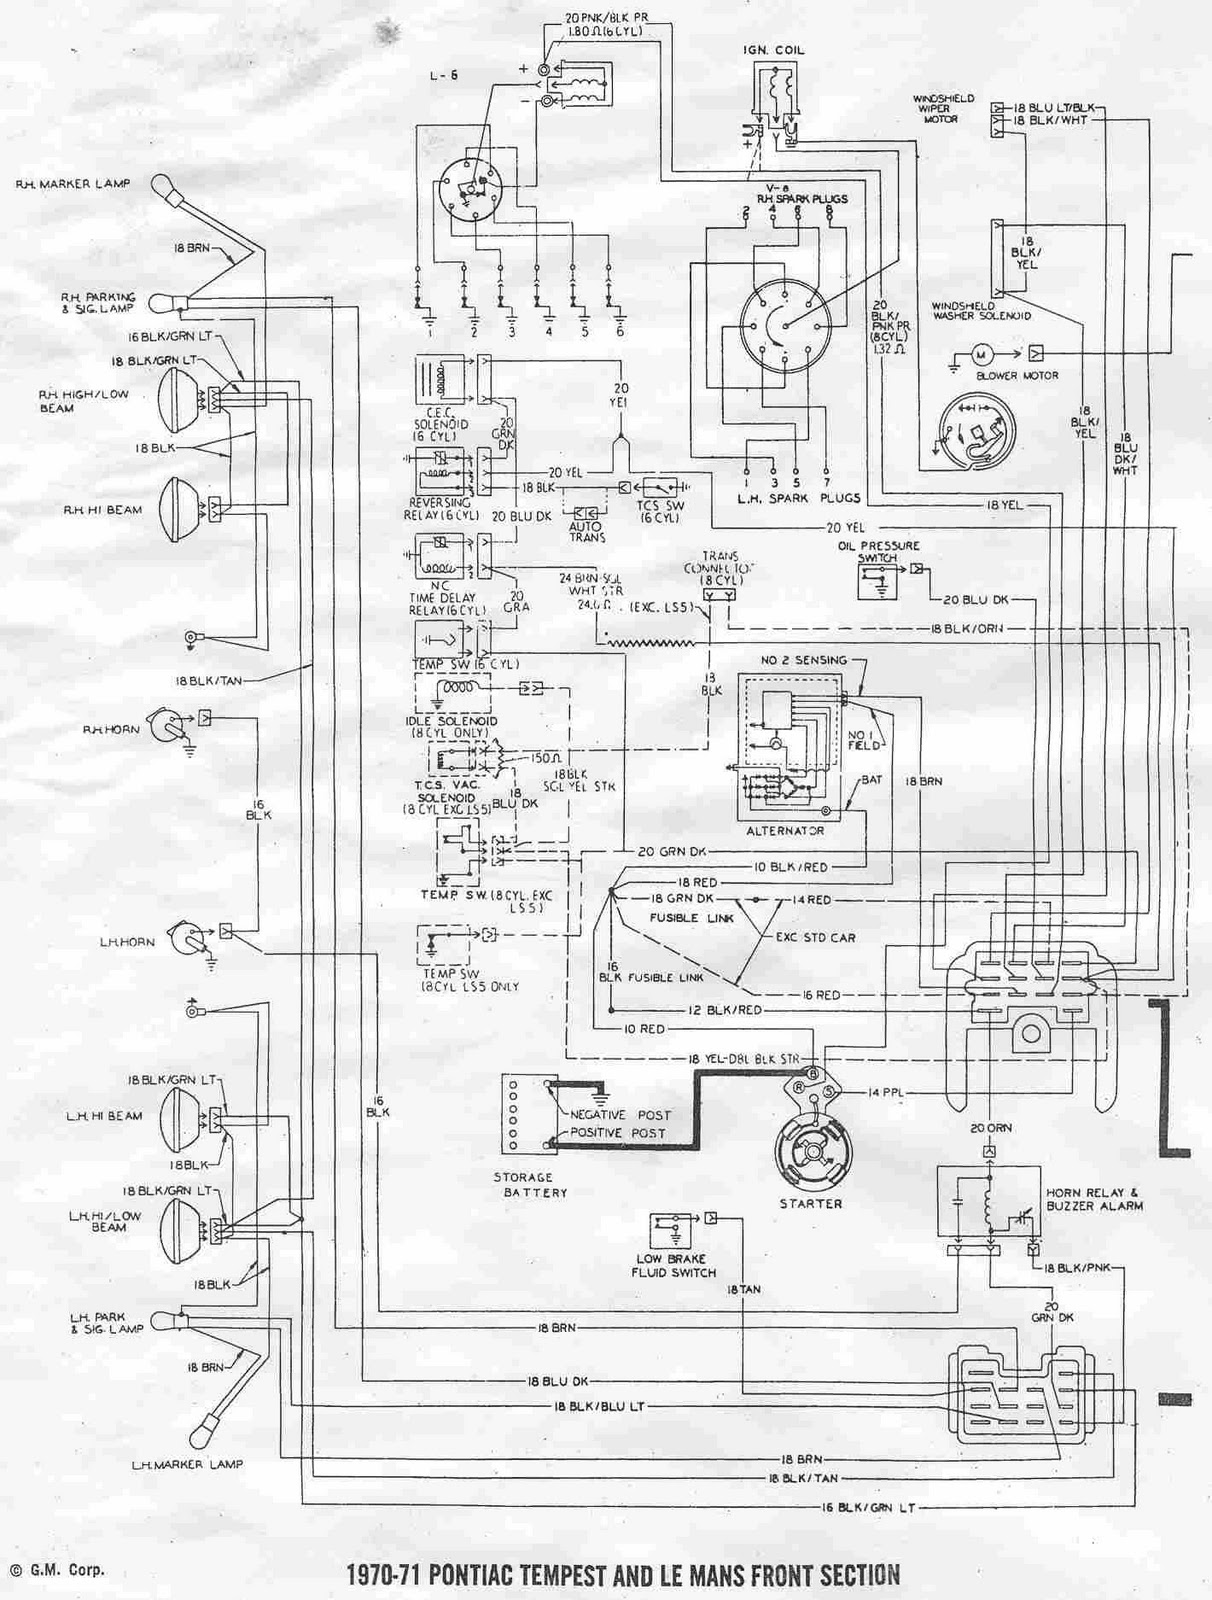 1967 mercury cougar wiring diagram product wiring diagrams u2022 1967 mercury cougar wiring diagram 1967 [ 1212 x 1600 Pixel ]